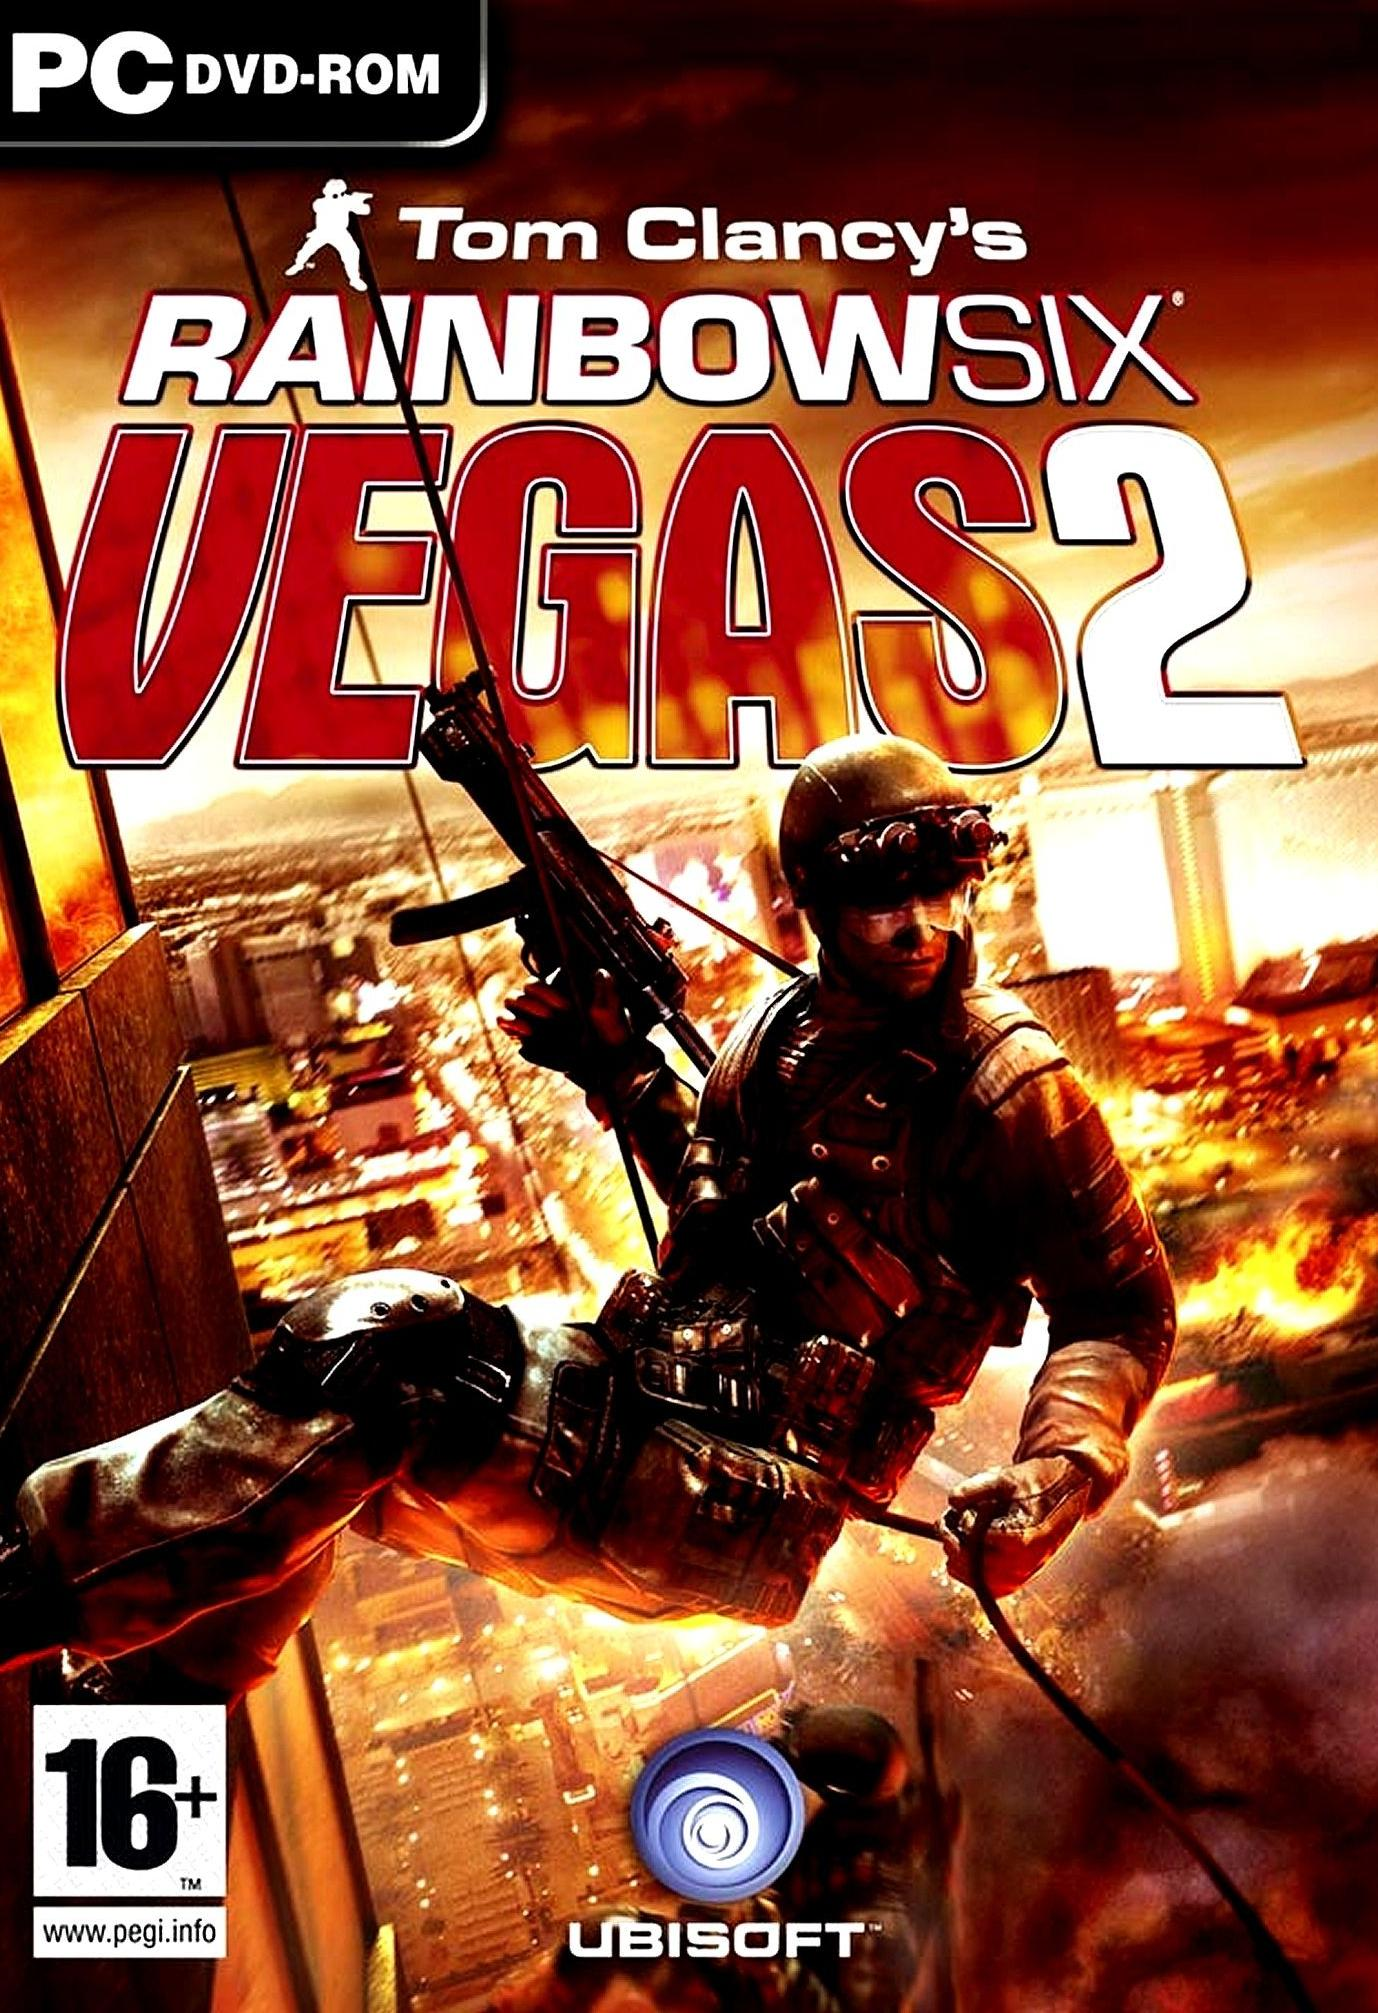 Image result for Tom Clancy's Rainbow Six® Vegas 2 cover pc